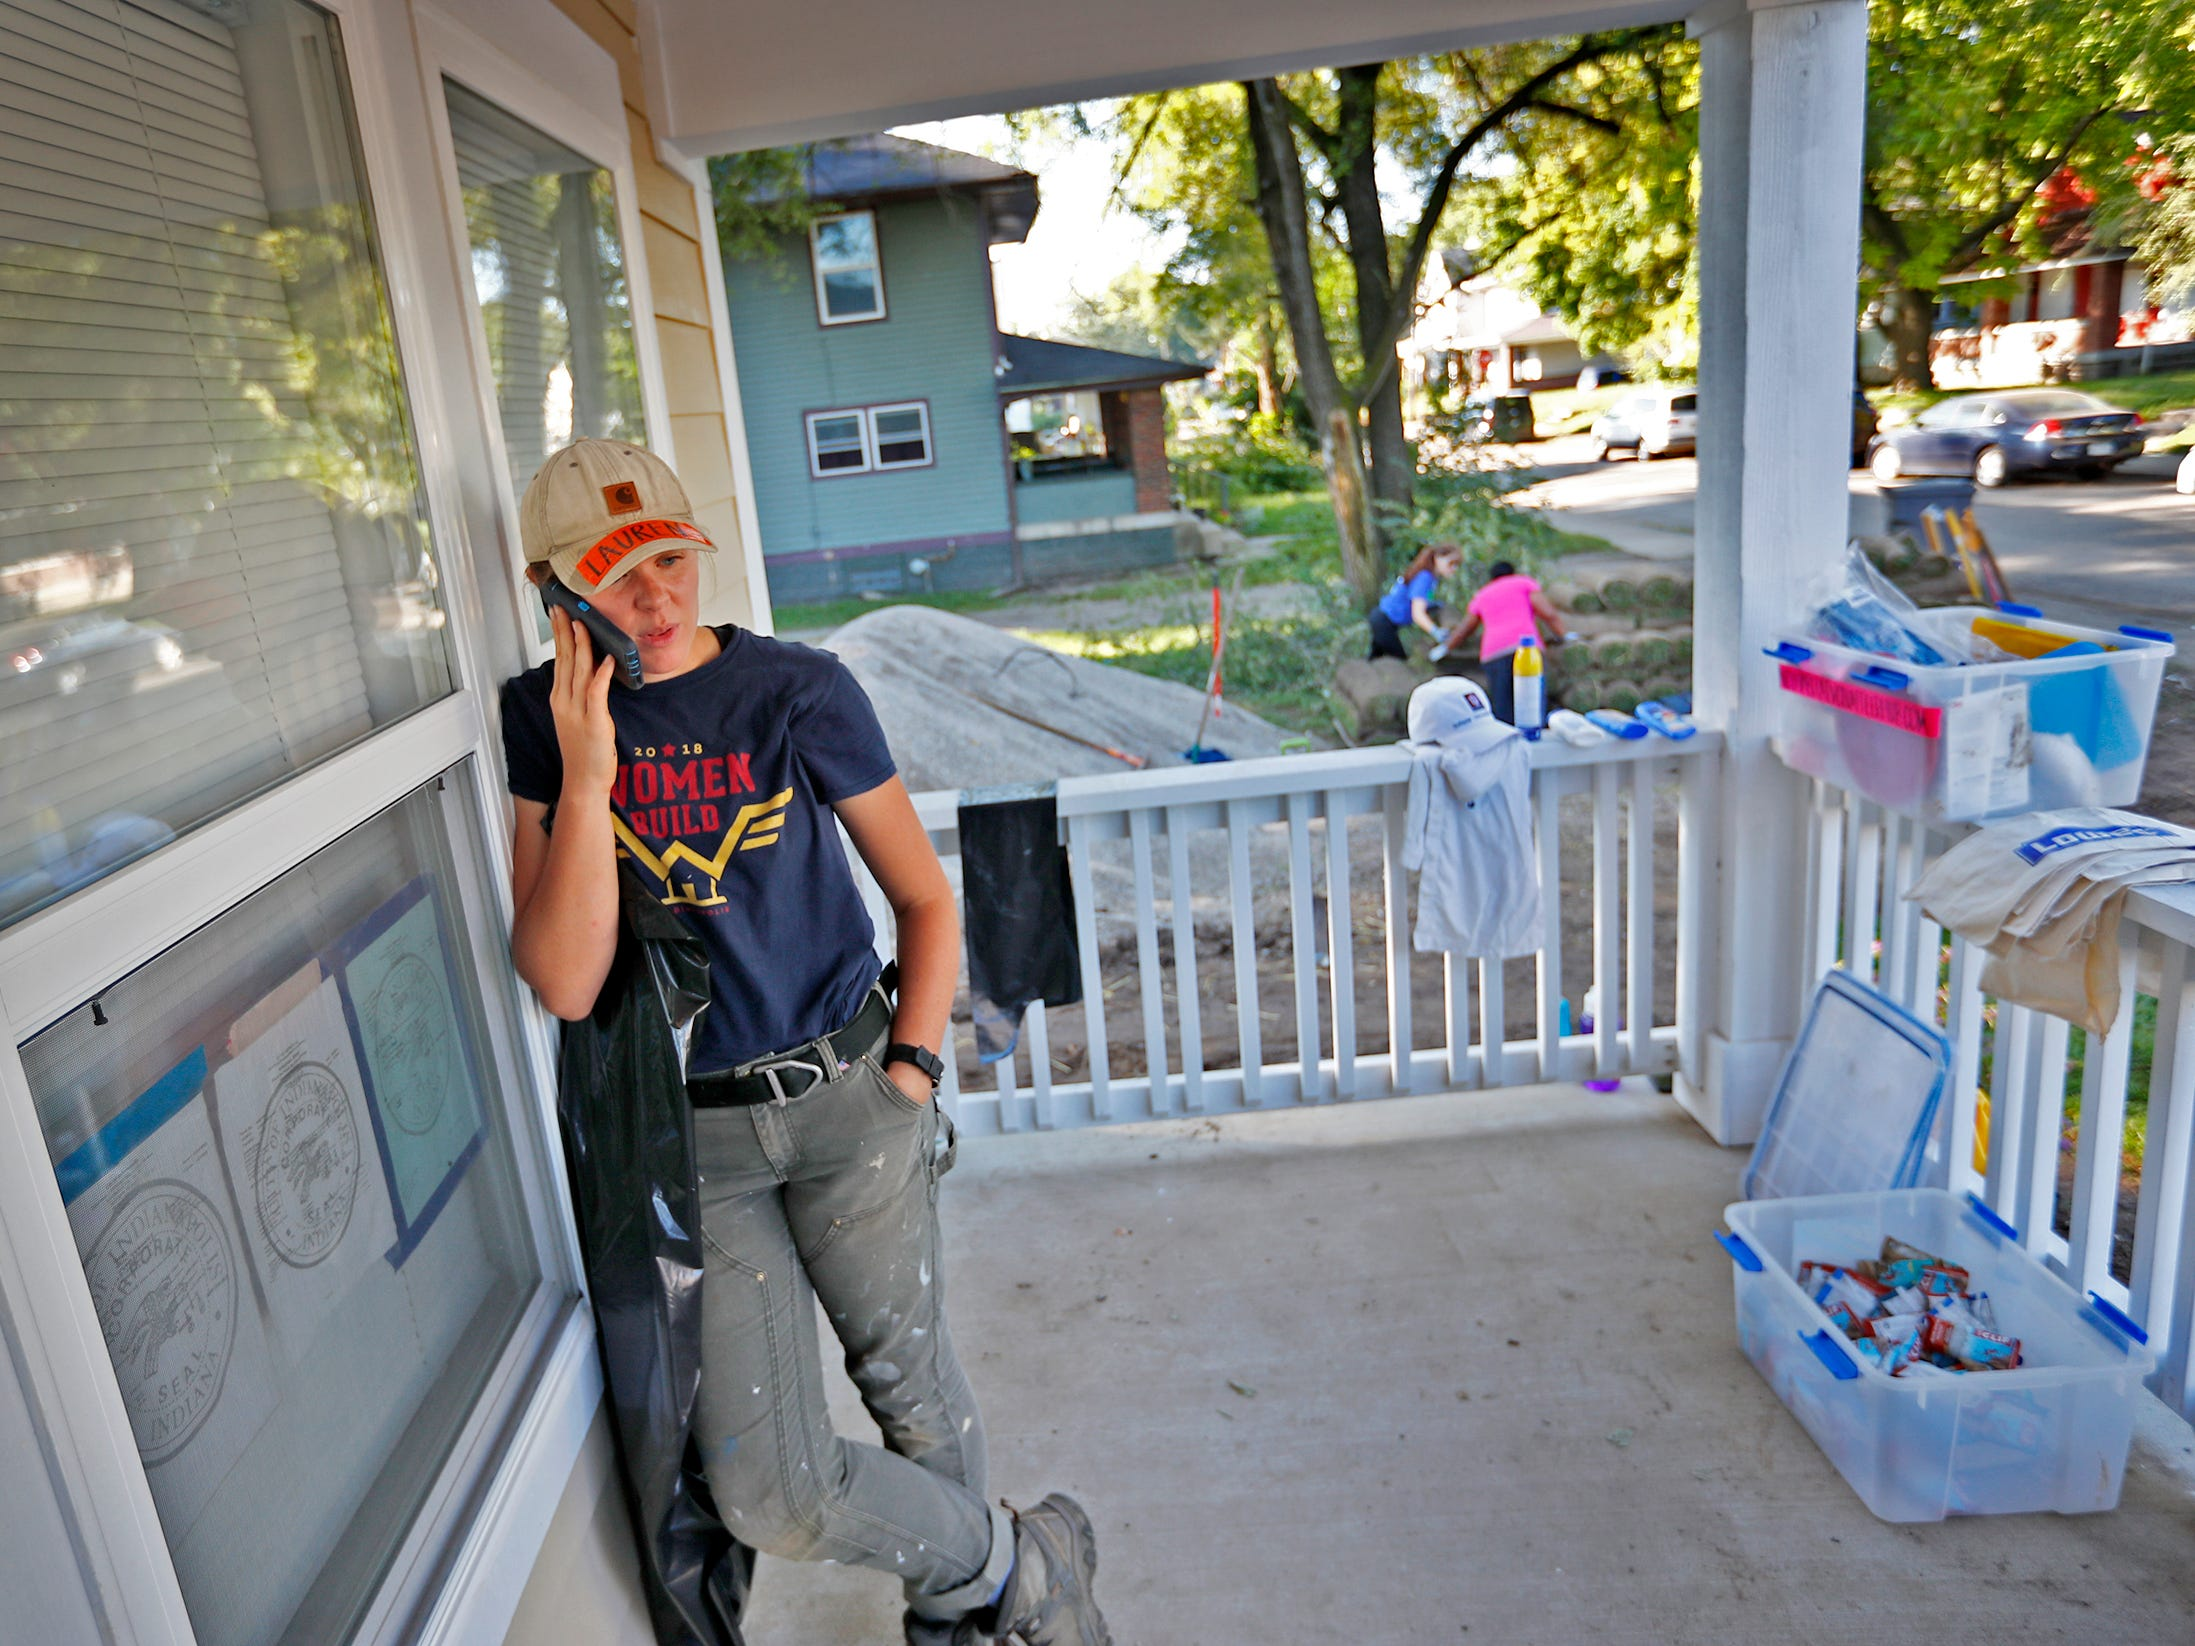 Construction superintendent Lauren Wigton takes a call at a Habitat for Humanity home, during the 10th Annual IU Health Day of Service, Friday, Sept. 13, 2018.  Wigton is the first woman superintendent for a Habitat for Humanity home in Greater Indianapolis.  IU Health team members donated time and effort building and finishing a Habitat for Humanity home in the 3700 block of Kenwood Ave. For 22 days, with partner volunteers, over 250 members of the IU Health team have donated more than 1680 hours at the house that will become the new home for the Ndatira family.